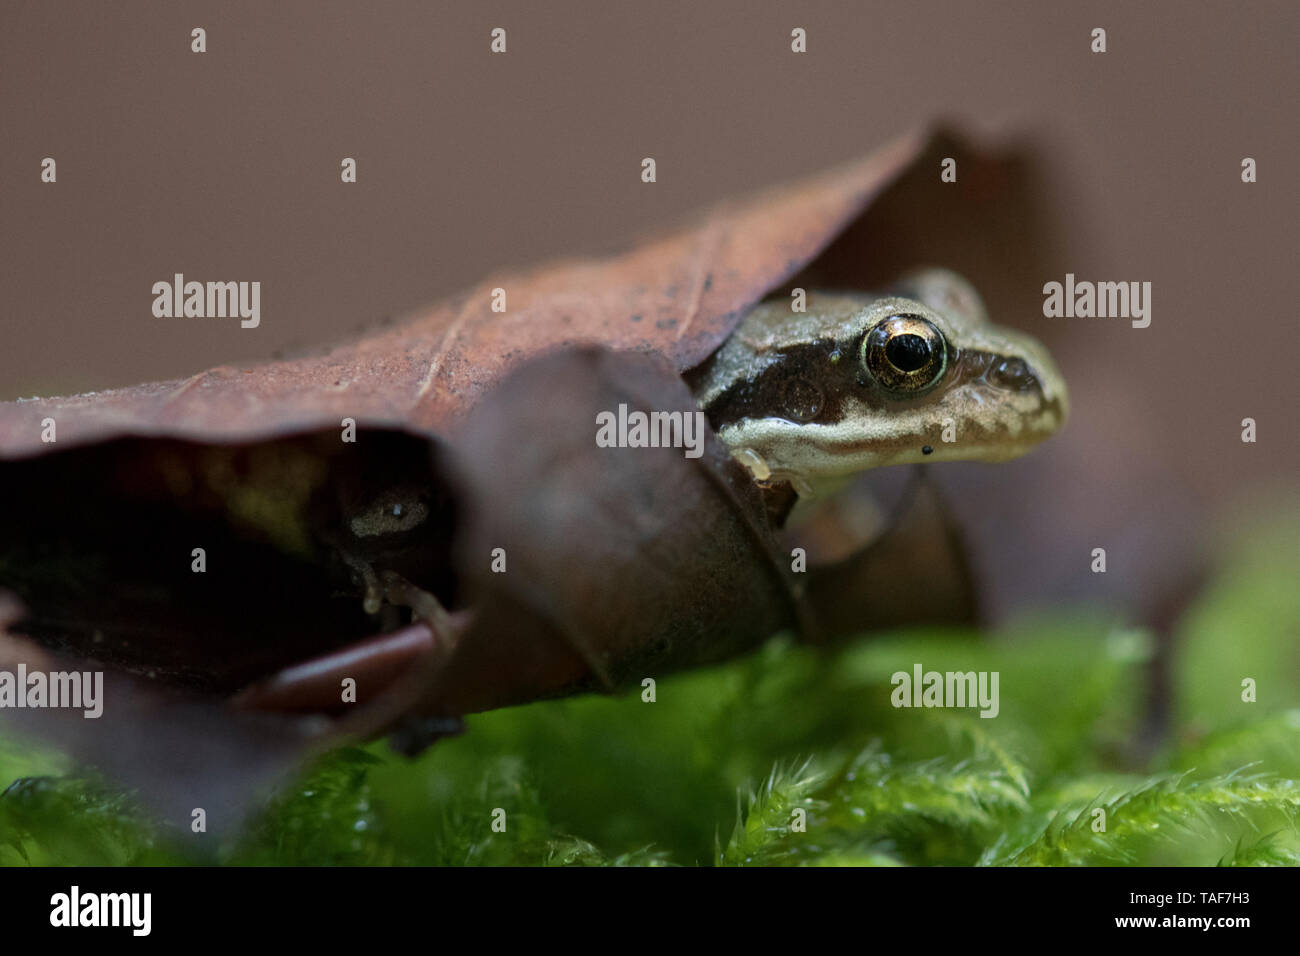 European frog (Rana temporaria) in a dead leaf, Vosges, France - Stock Image